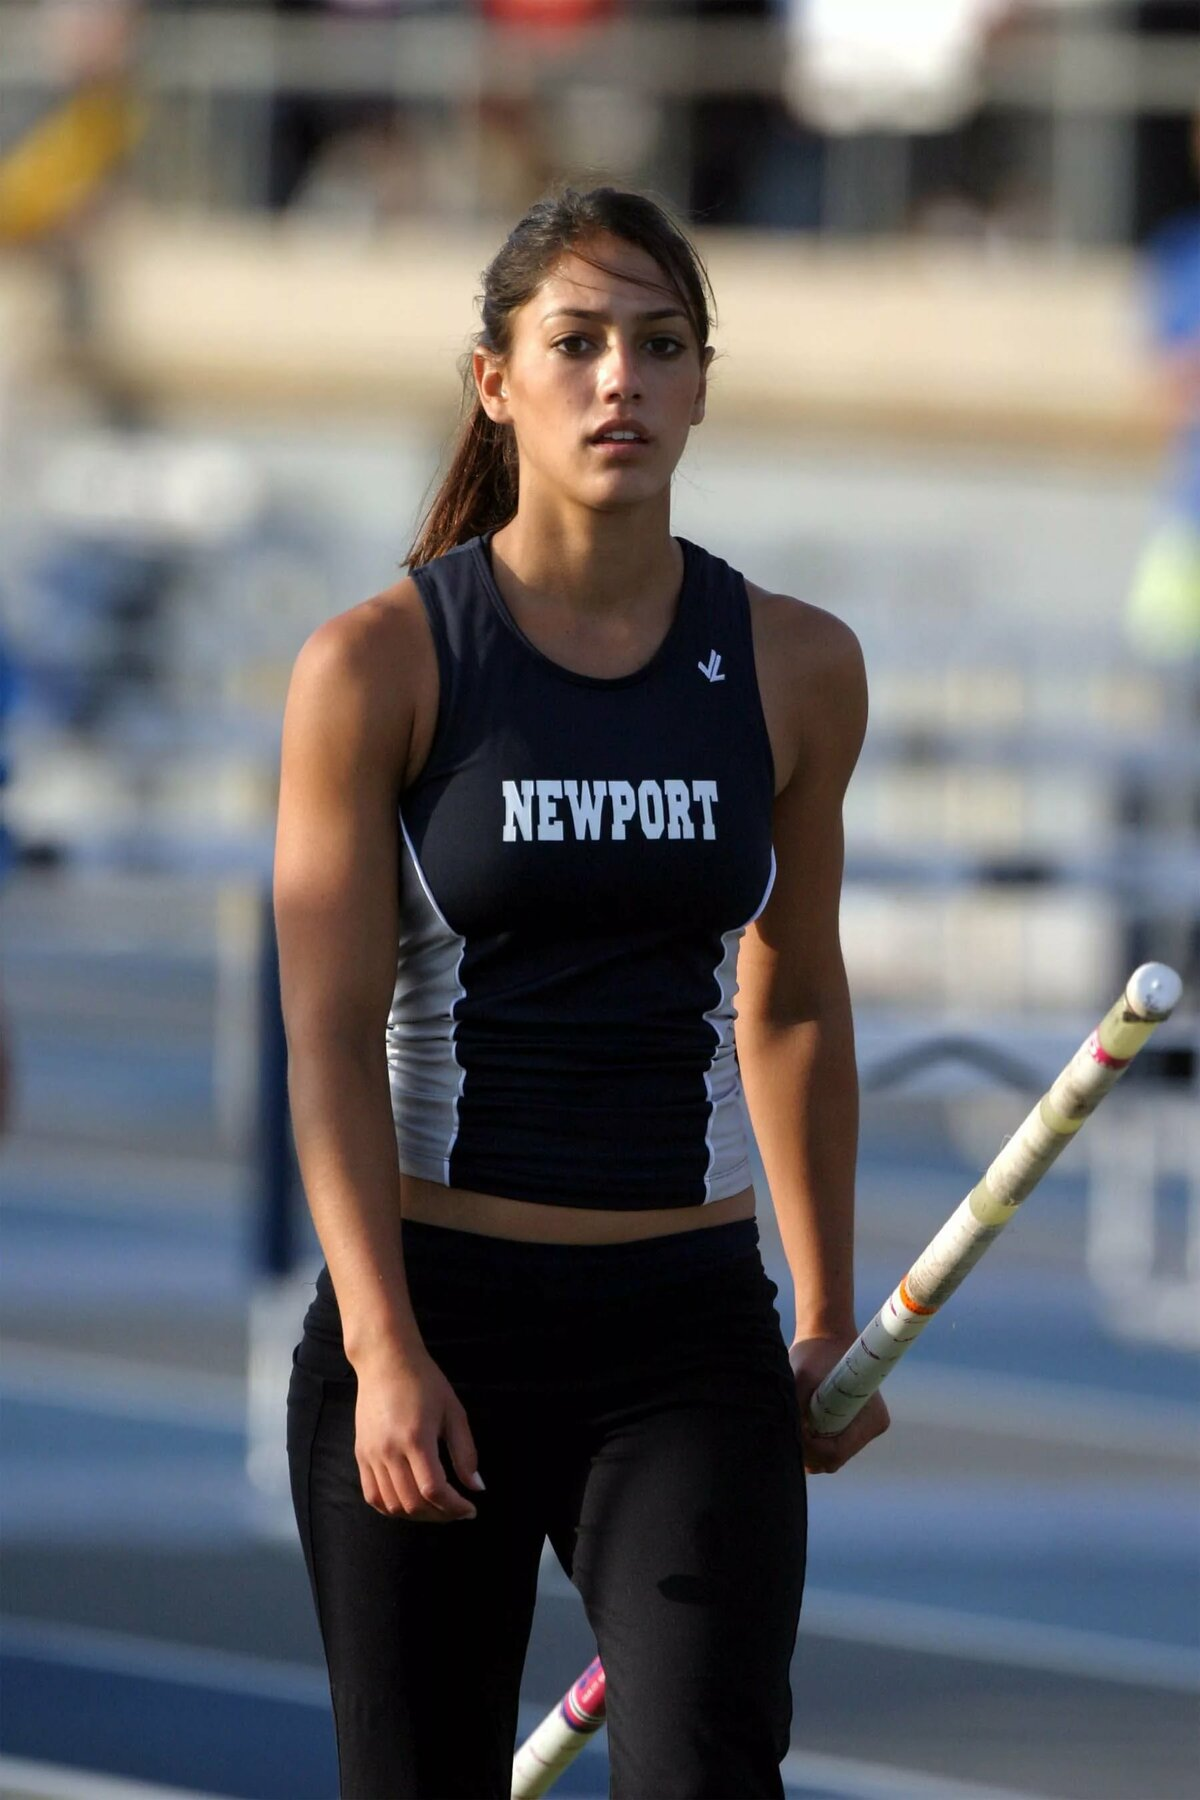 Allison stokke hot cowgirl, christina young porn pics